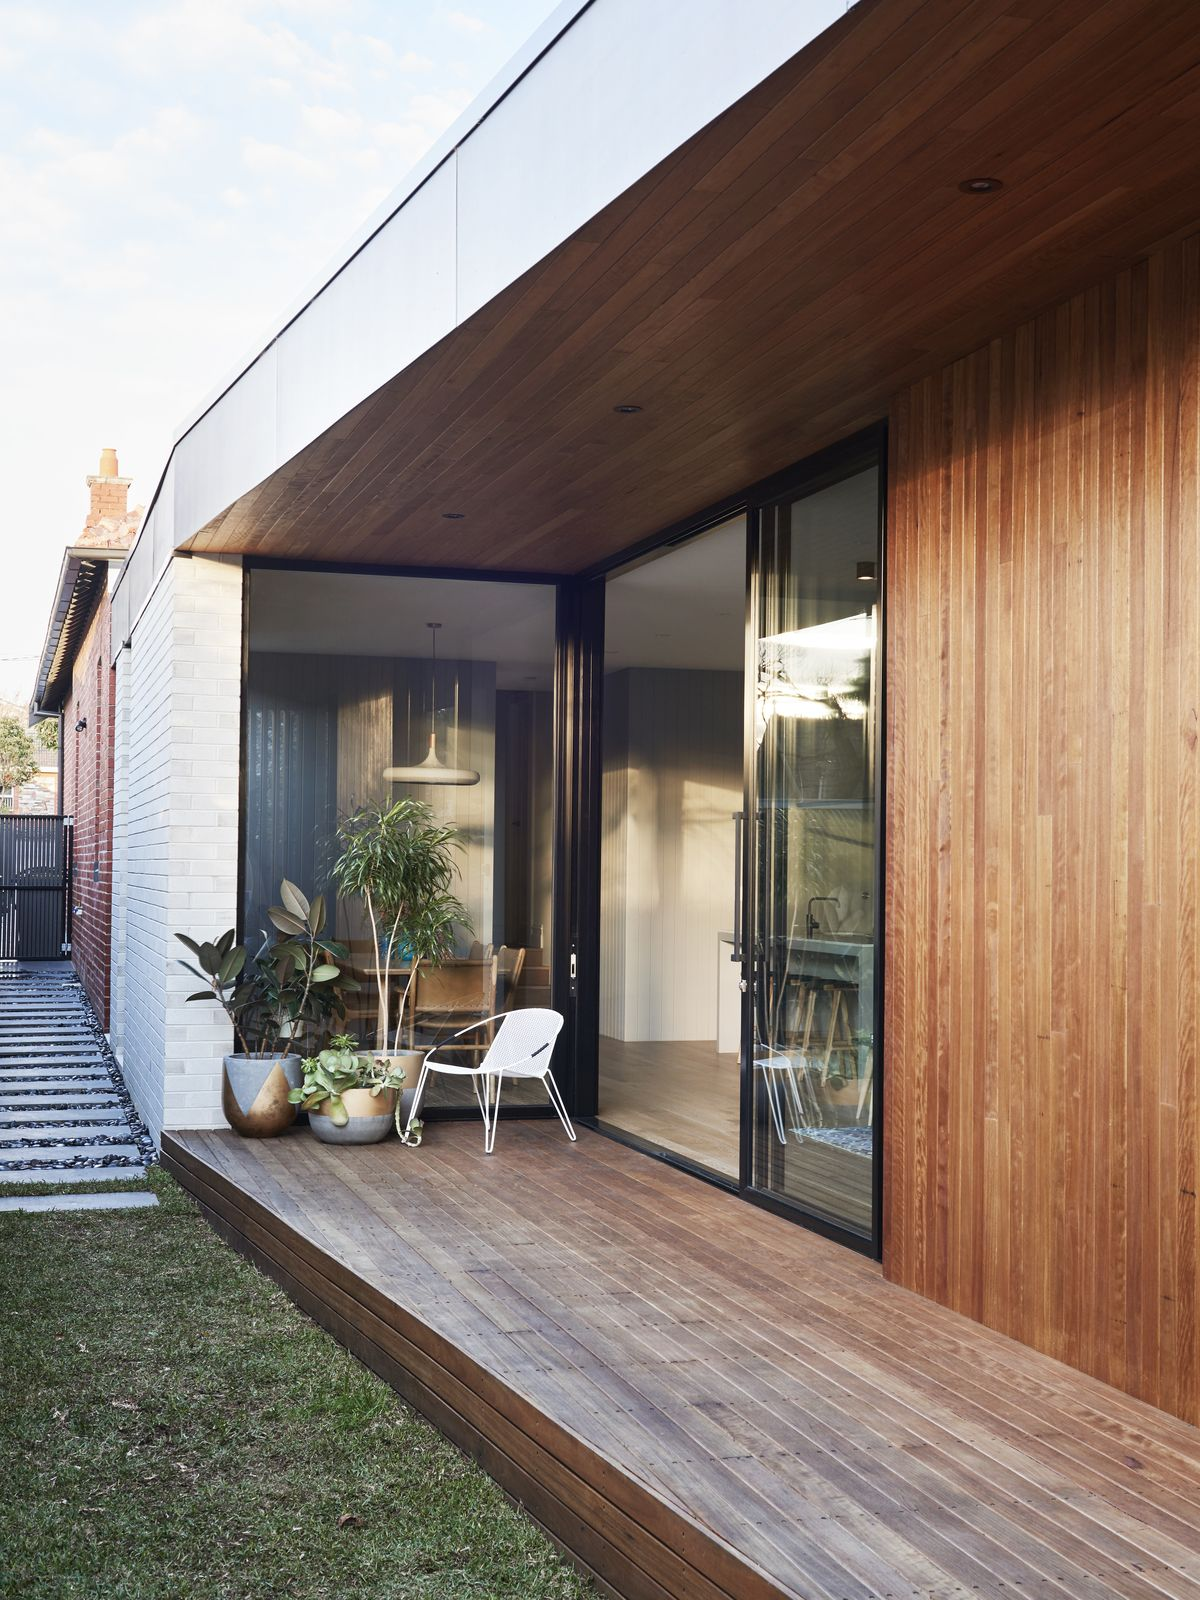 gallery of elsternwick 3 by pleysier perkins architects located in elsternwick victoria australia photographed by eve wilson